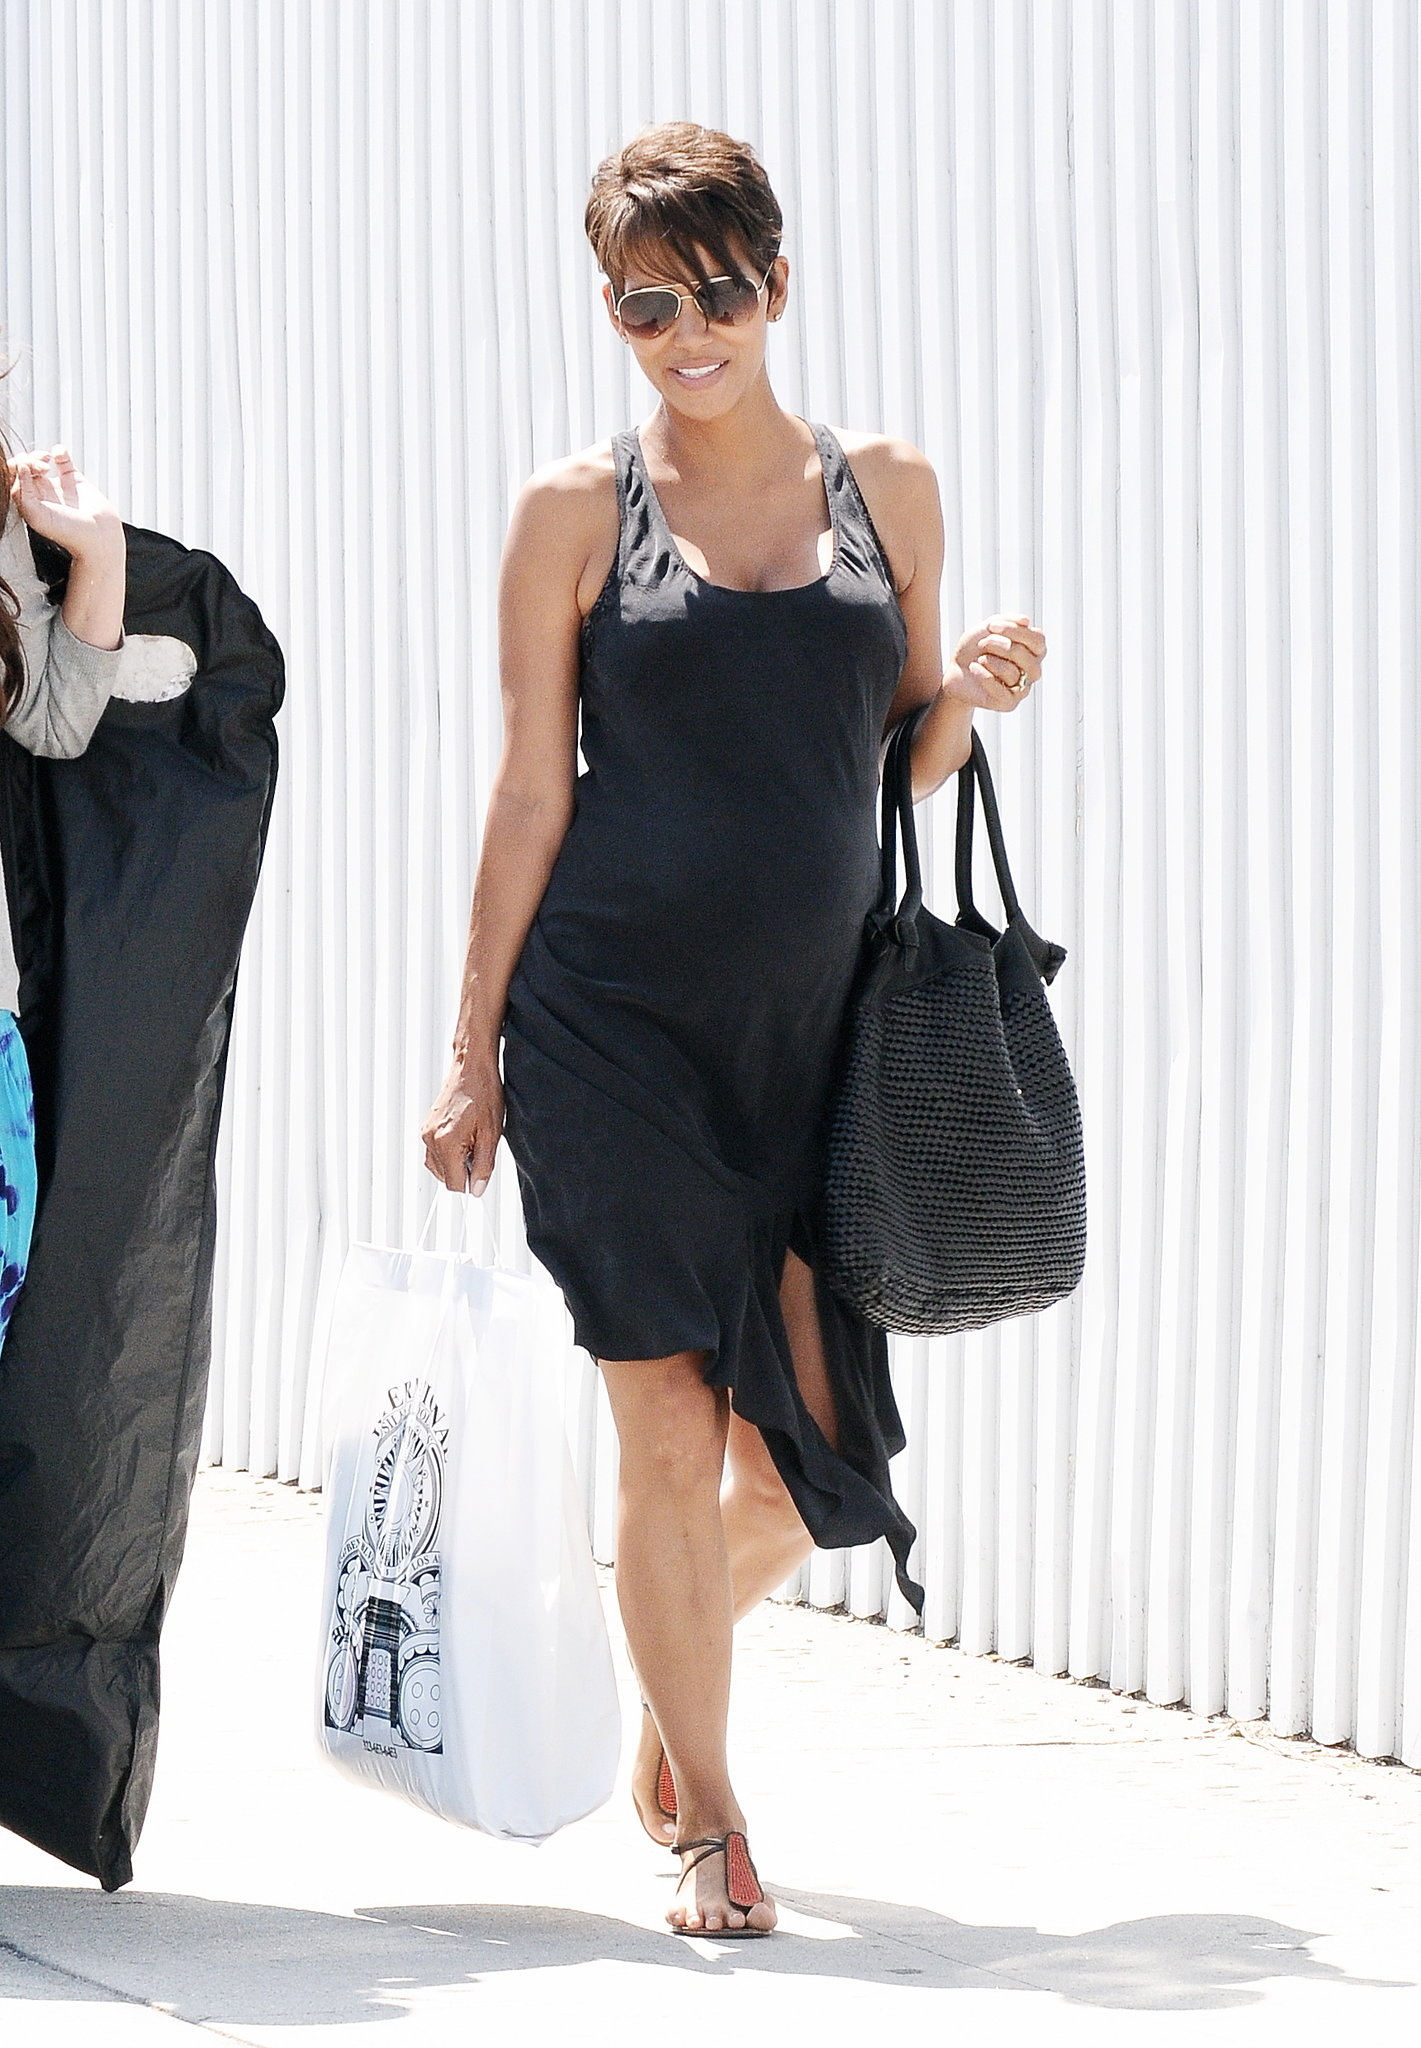 Halle stuck to black once again in Hollywood. Do the same in your city by dressing yourself in